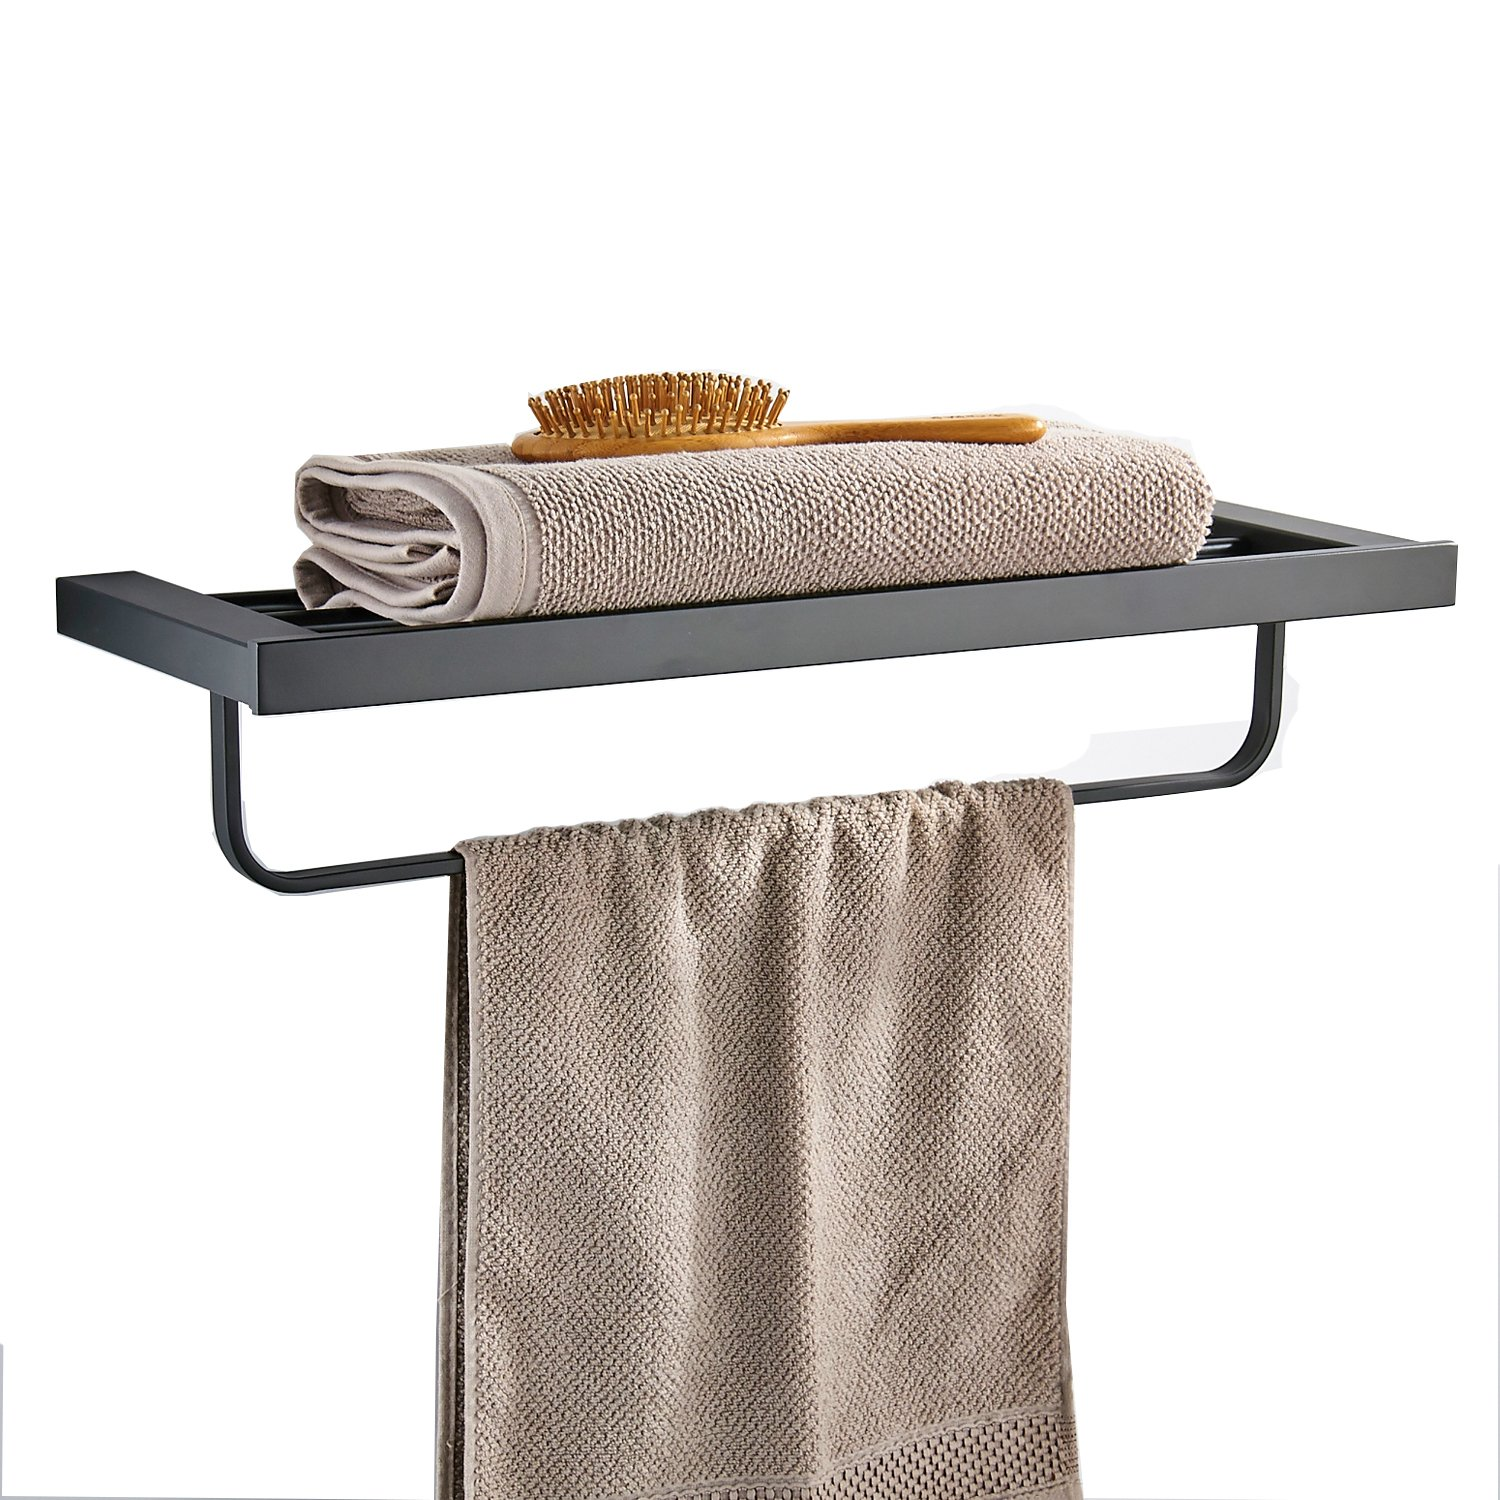 Bath Towel Shelf with Movable Bar 24 Inch Stainless Steel Bathroom Decor Rack Hotel Style Invisible Wall Mount Hanger Washcloth Holder Rack Hardware Included Matte Black MARMOLUX ACC